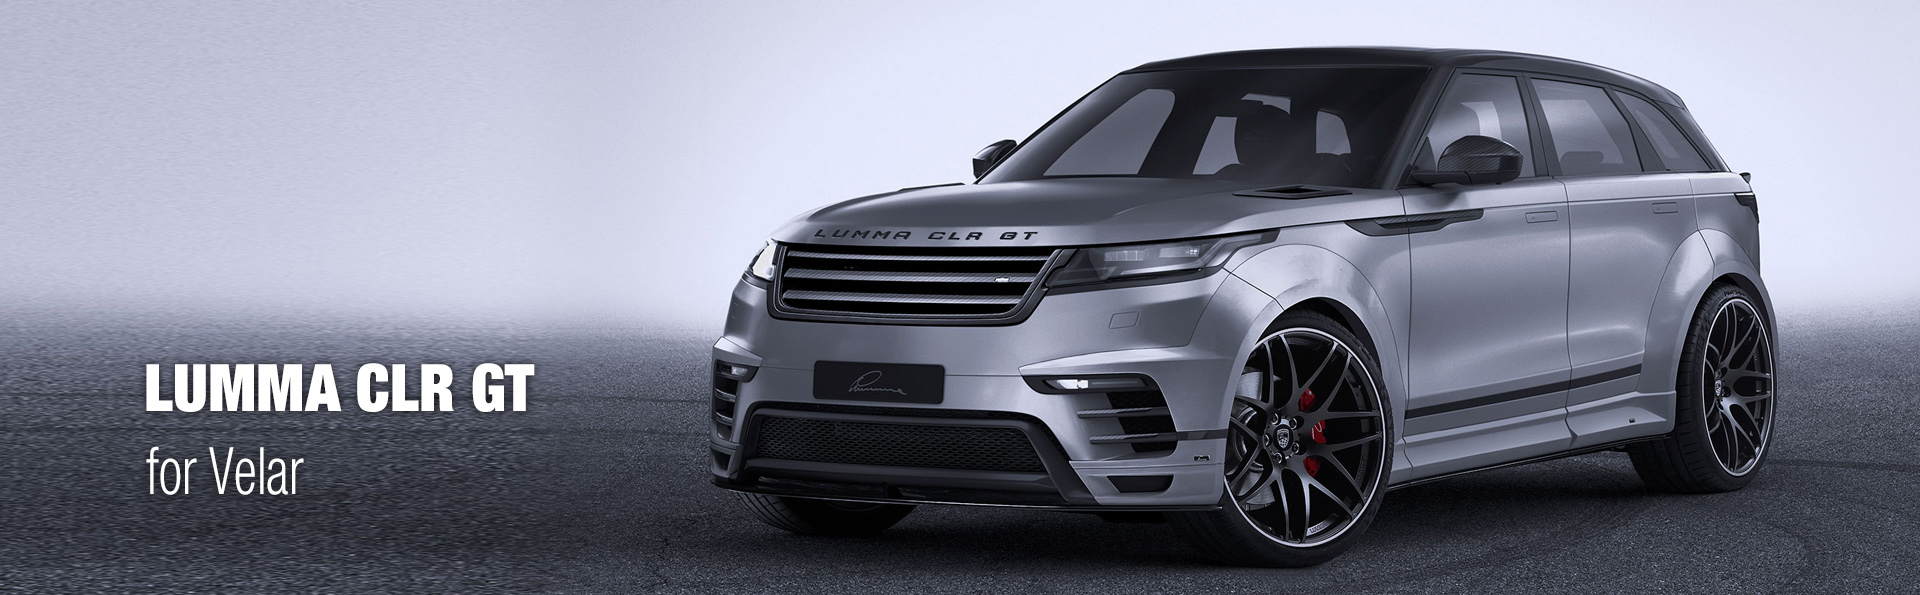 LUMMA CLR GT for Velar © LUMMA-Design